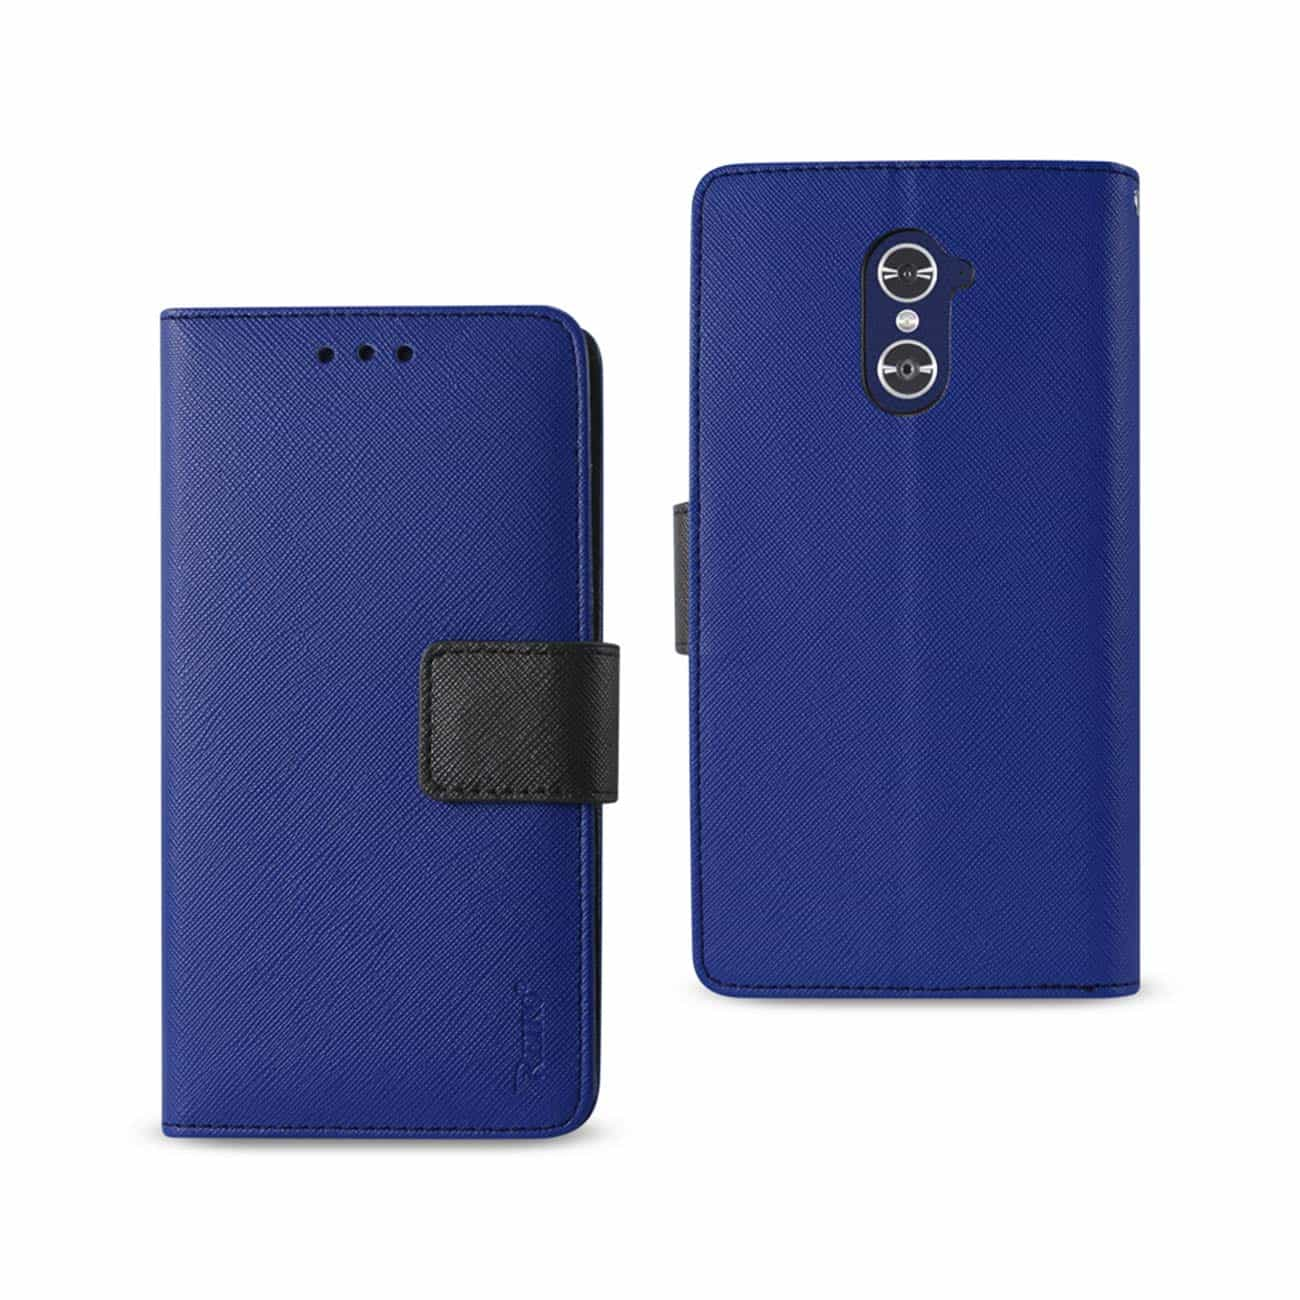 ZTE GRAND X MAX 2 3-IN-1 WALLET CASE IN NAVY